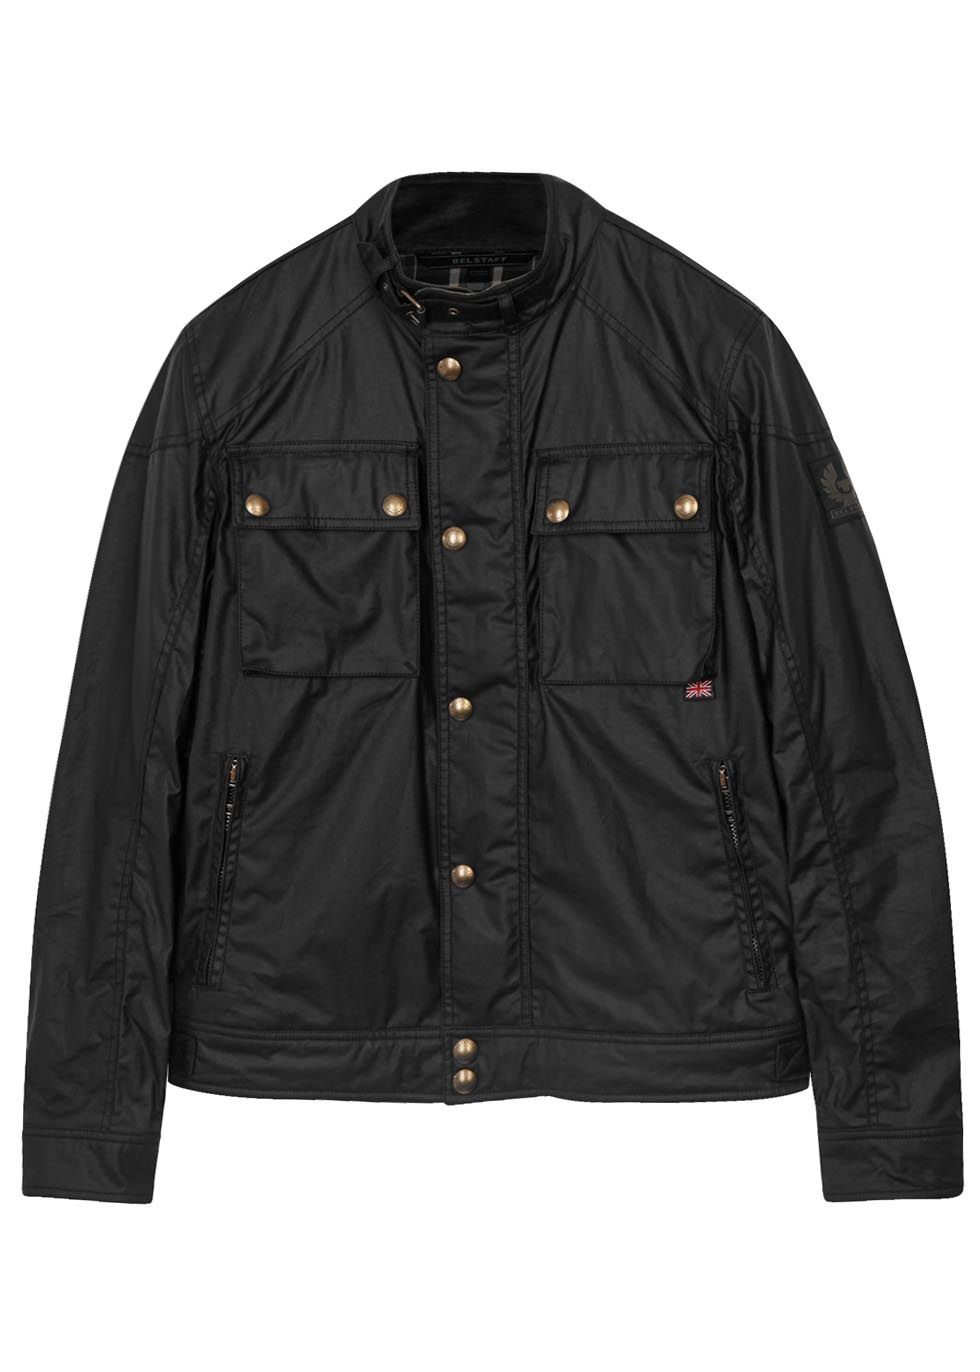 Racemaster black coated cotton jacket - Belstaff